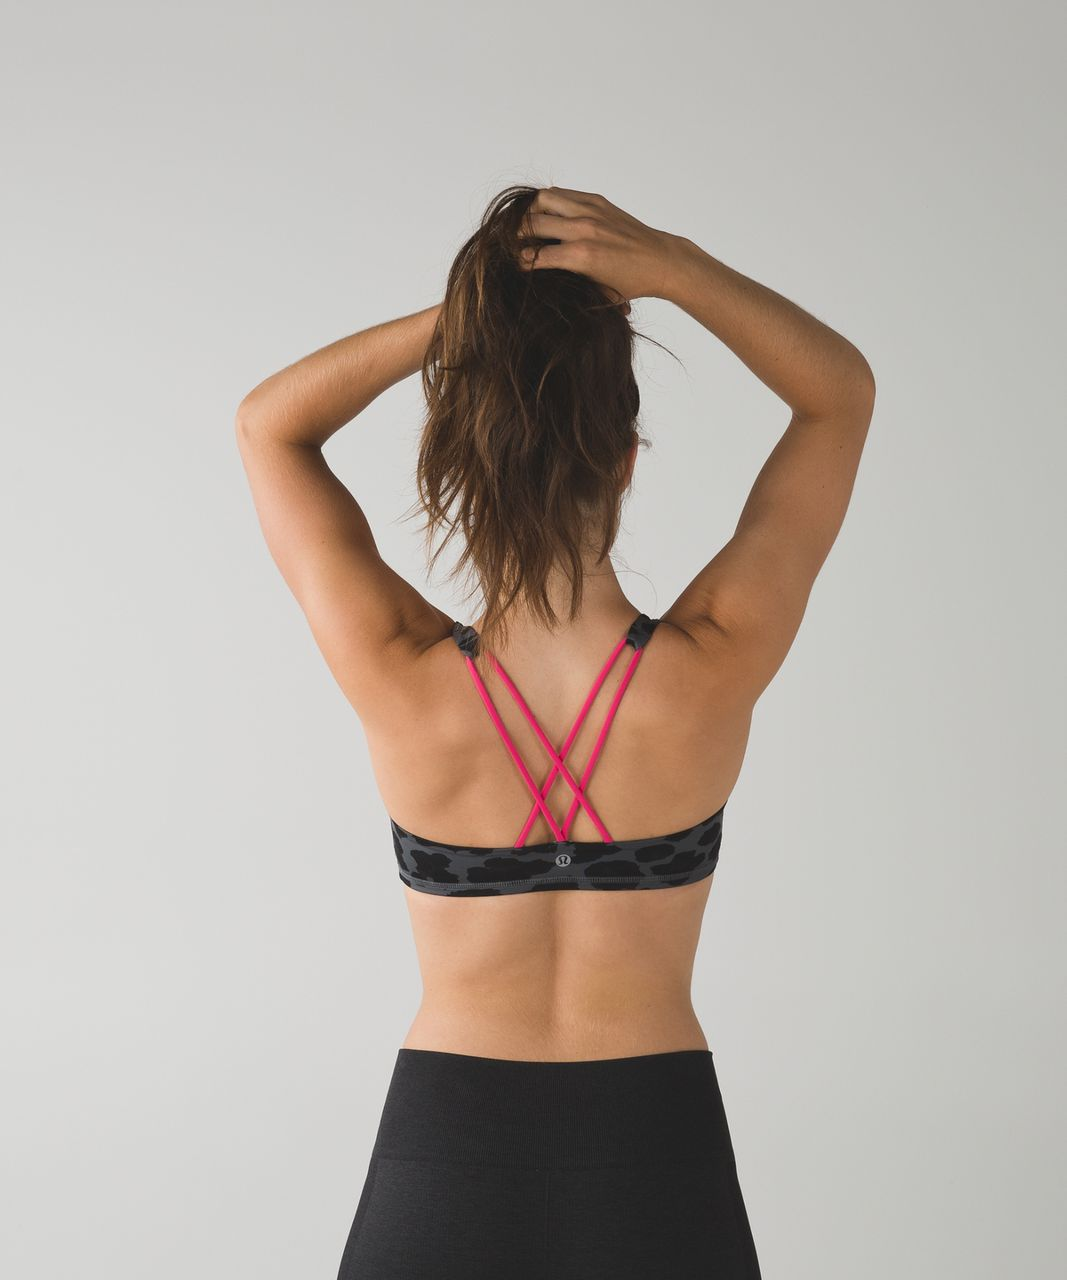 Lululemon Free To Be Bra - Cherry Cheetah Dark Slate Black / Giant Herringbone Black Heathered Black / Deep Coal